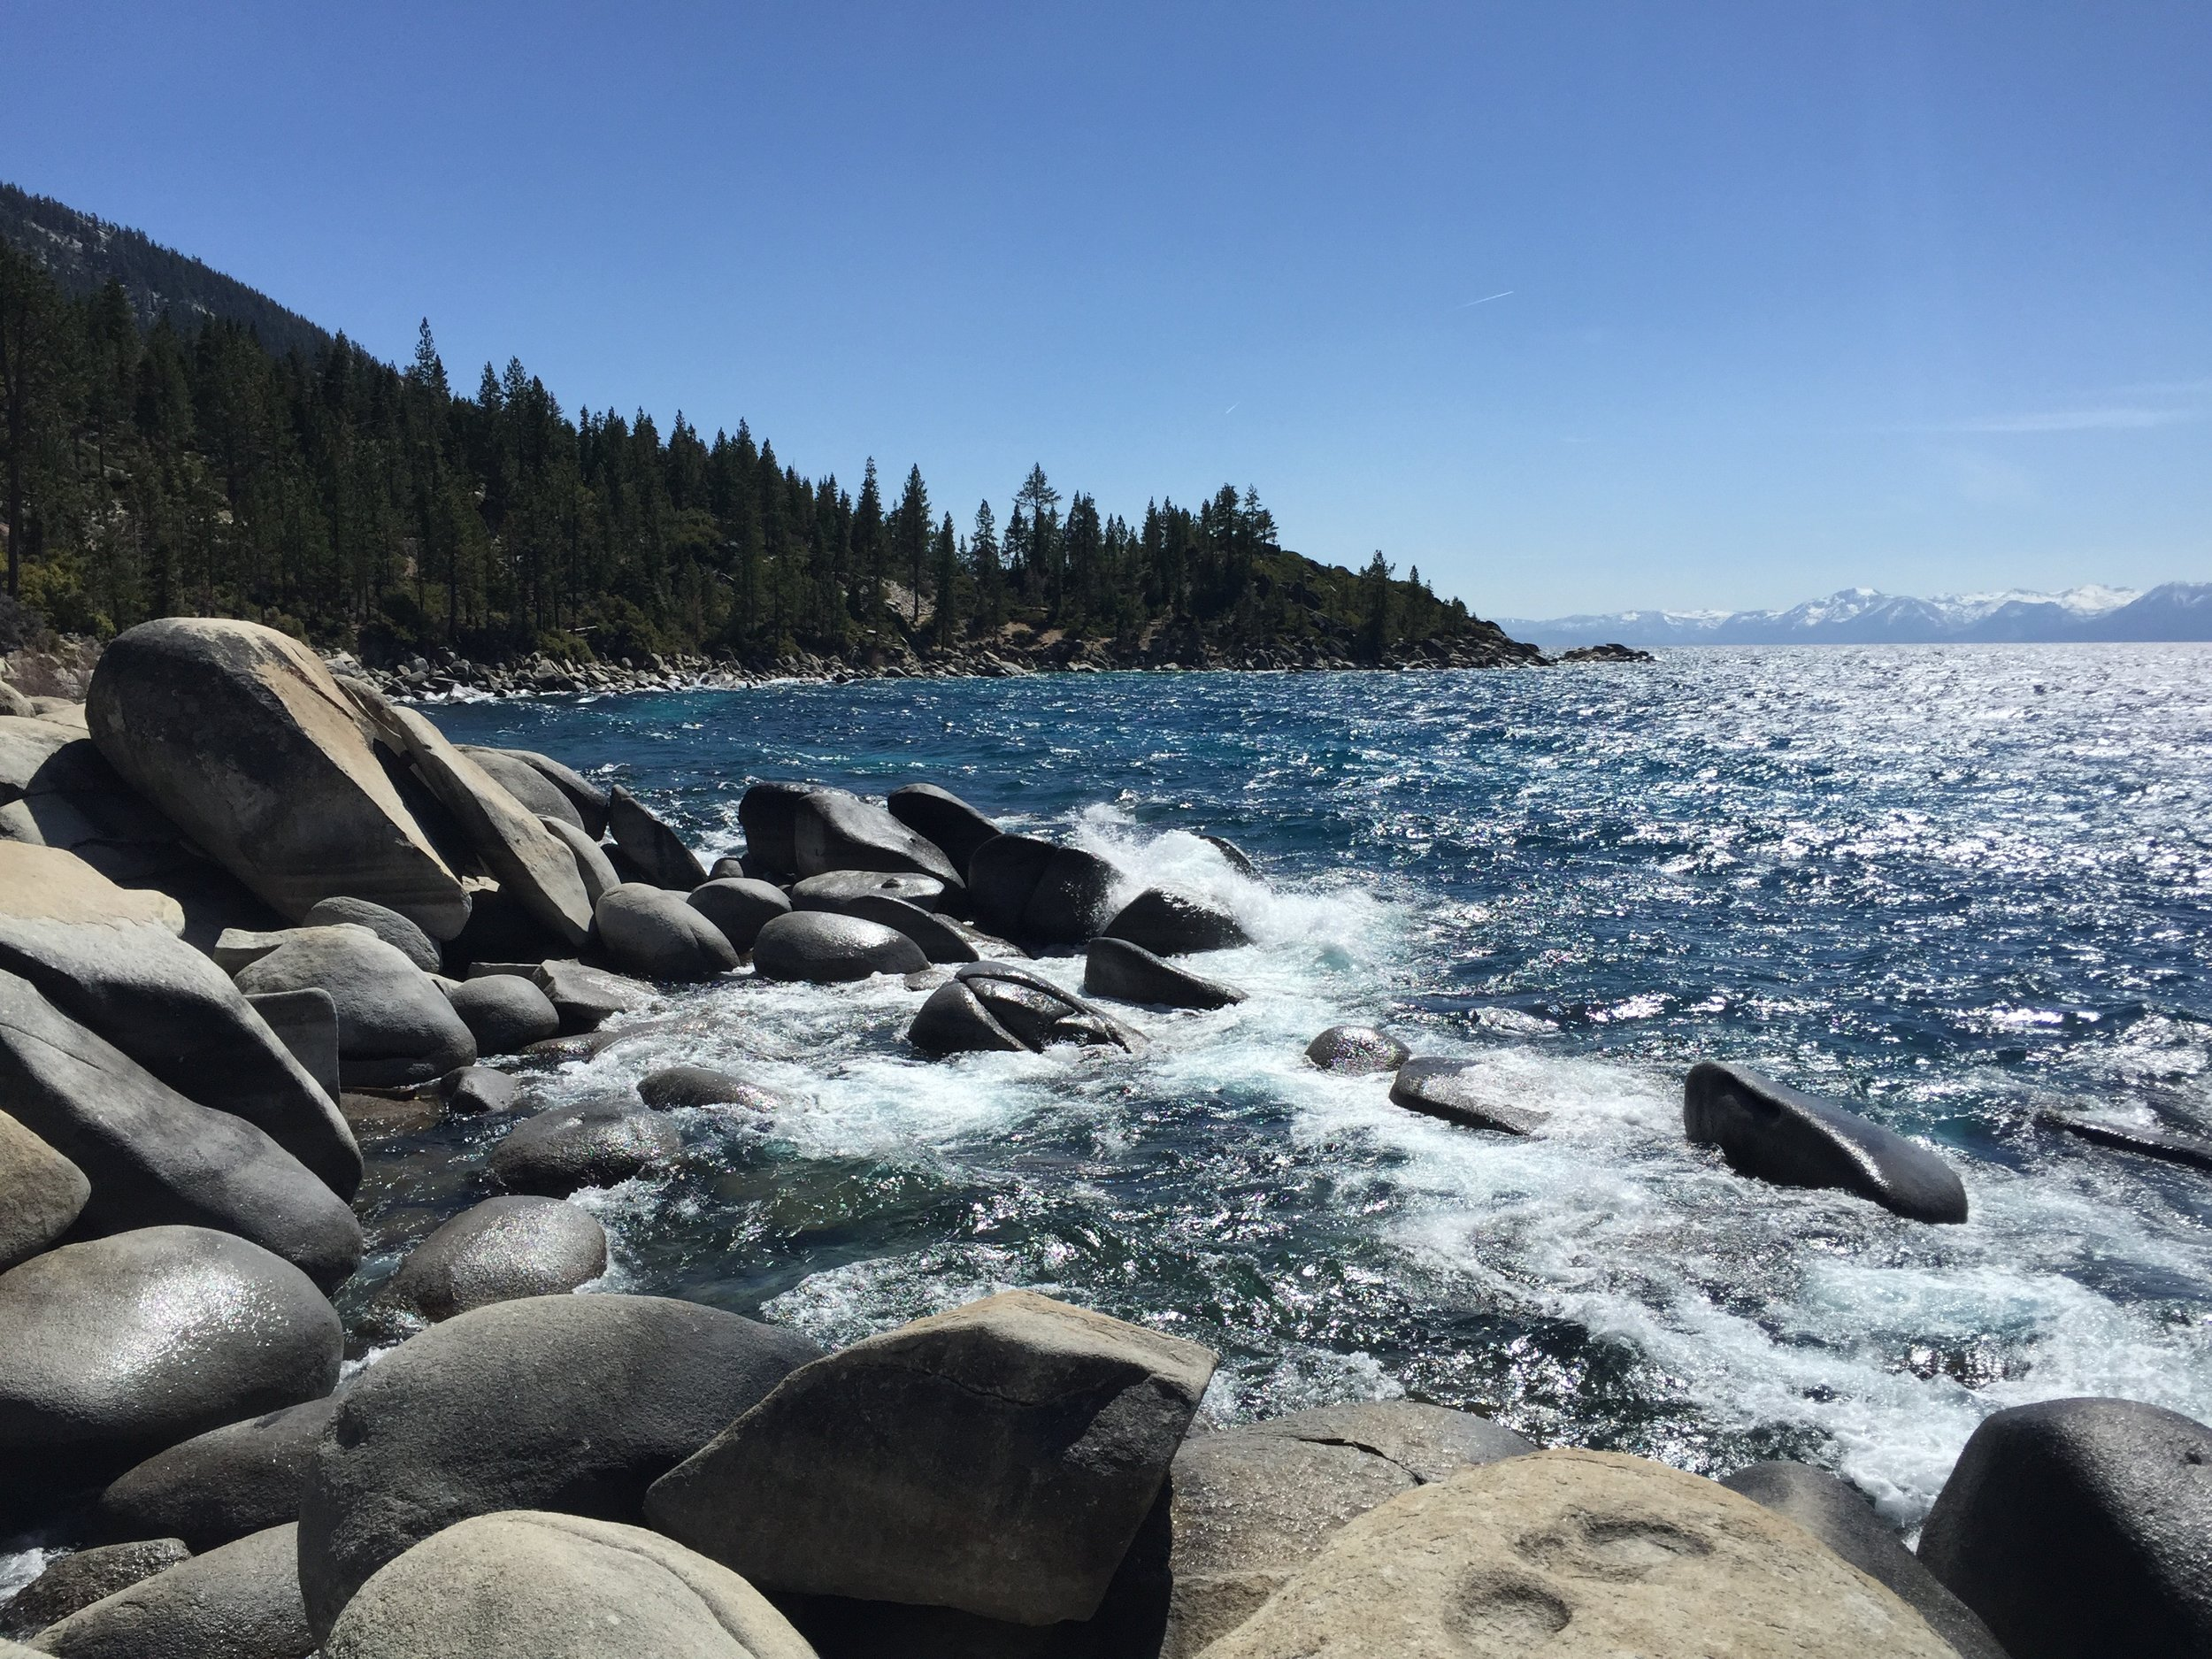 Lae Tahoe- Less than an hour drive from lab.